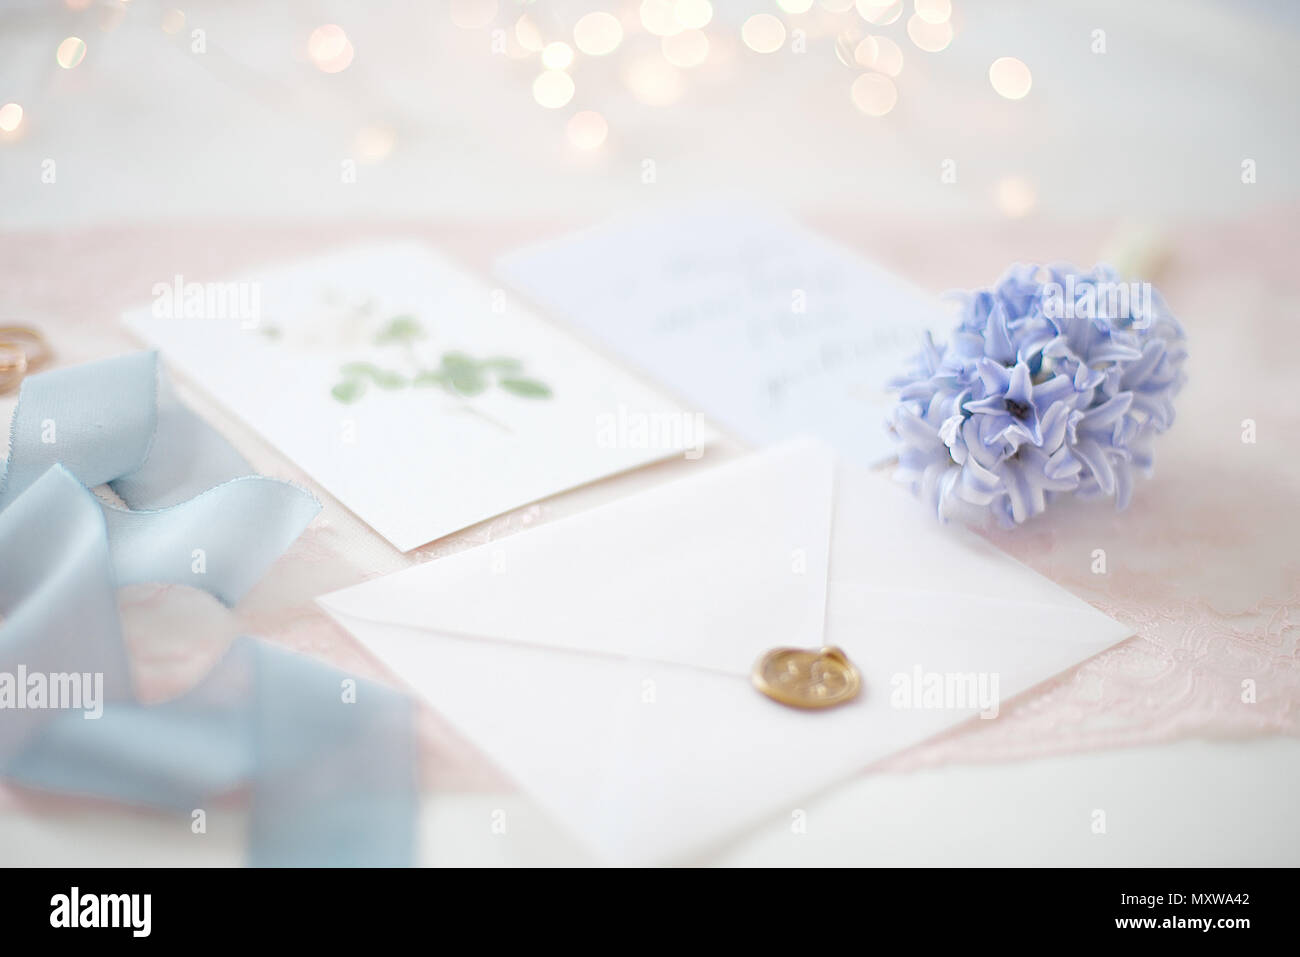 Wedding invitation card as a decorated letter with blurred lights on wedding invitation card as a decorated letter with blurred lights on background bokeh stopboris Images